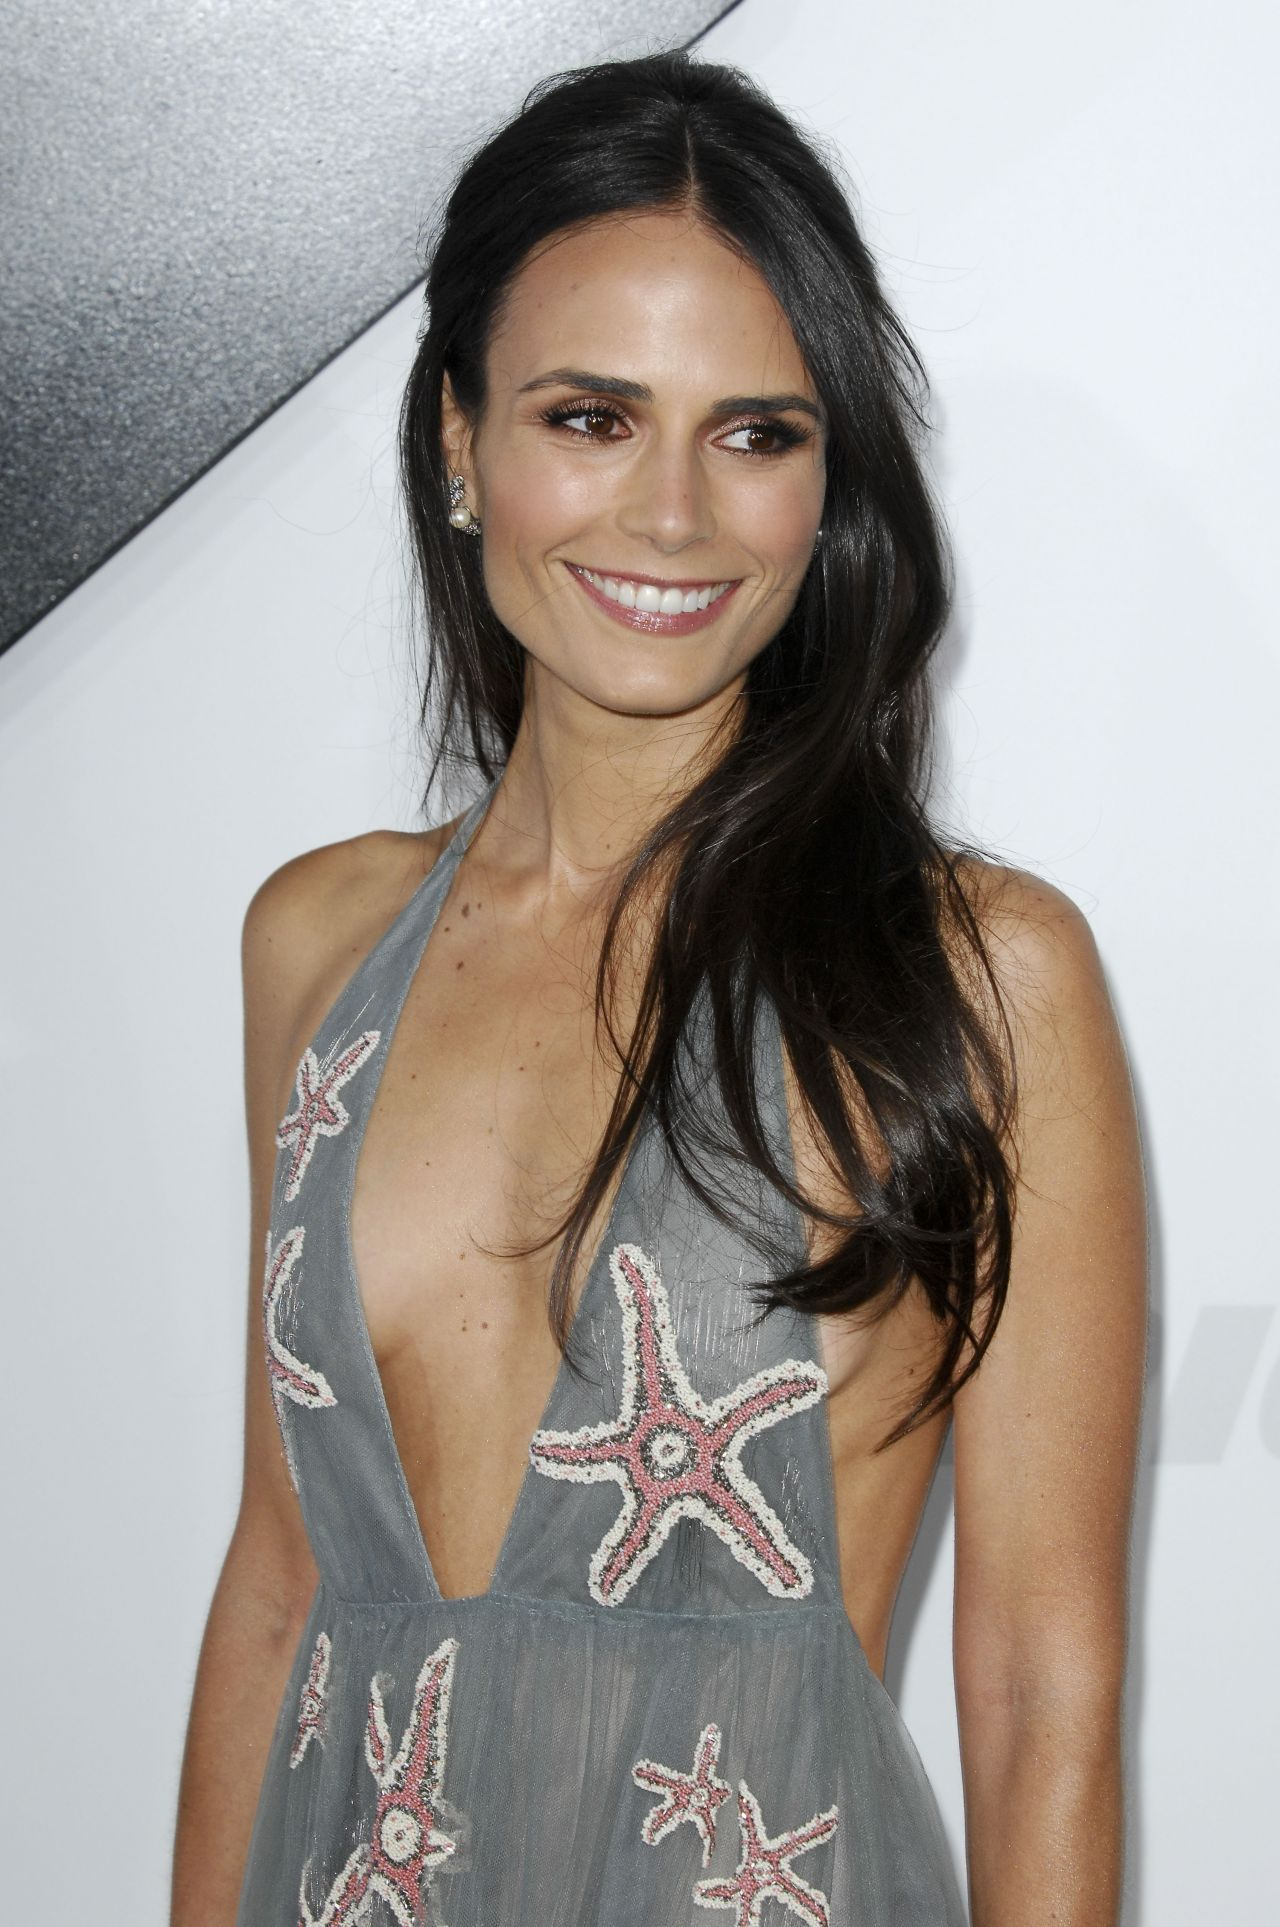 jordana brewster 2016jordana brewster 2017, jordana brewster marie claire, jordana brewster 2013, jordana brewster 2016, jordana brewster and paul walker, jordana brewster interview, jordana brewster mia, jordana brewster wikipedia, jordana brewster lego batman, jordana brewster fan, jordana brewster kinopoisk, jordana brewster insta, jordana brewster looks like, jordana brewster people's choice 2017, jordana brewster kimdir, jordana brewster -, jordana brewster film, jordana brewster clayne crawford, jordana brewster imdb, jordana brewster screencaps